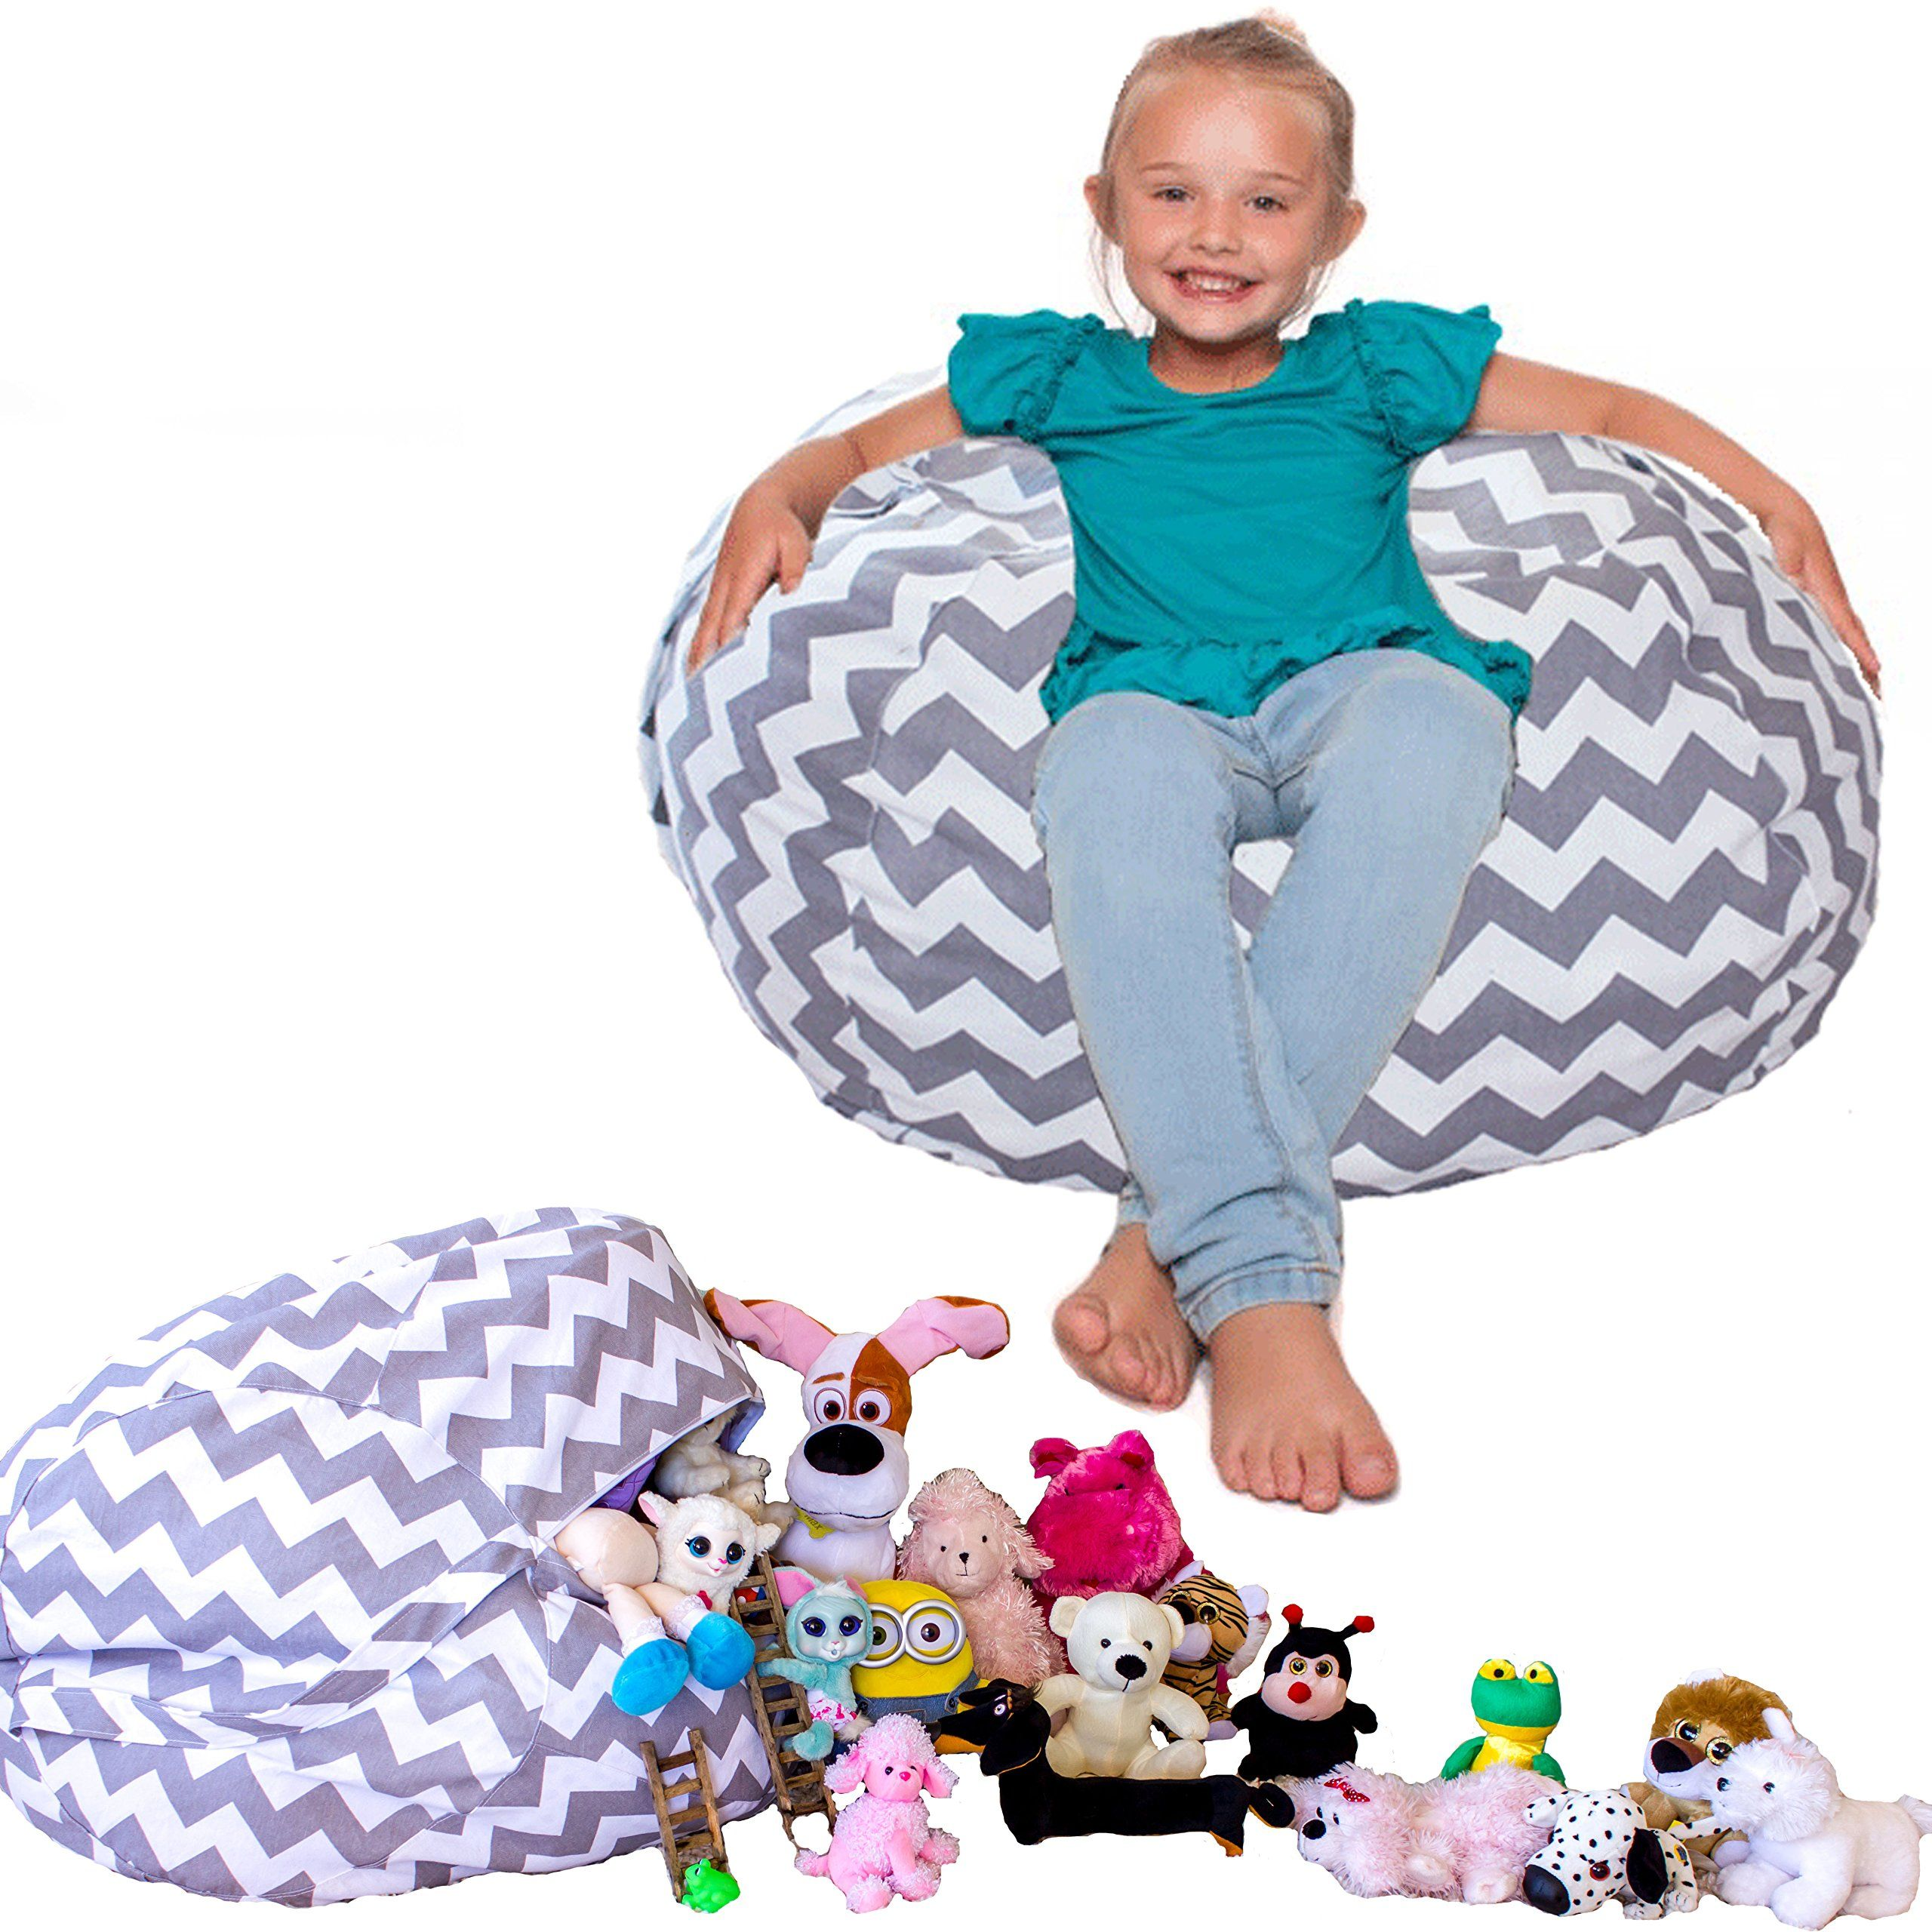 Marvelous Stuffed Animal Storage Beanbag Style The Popular Chevron Pdpeps Interior Chair Design Pdpepsorg